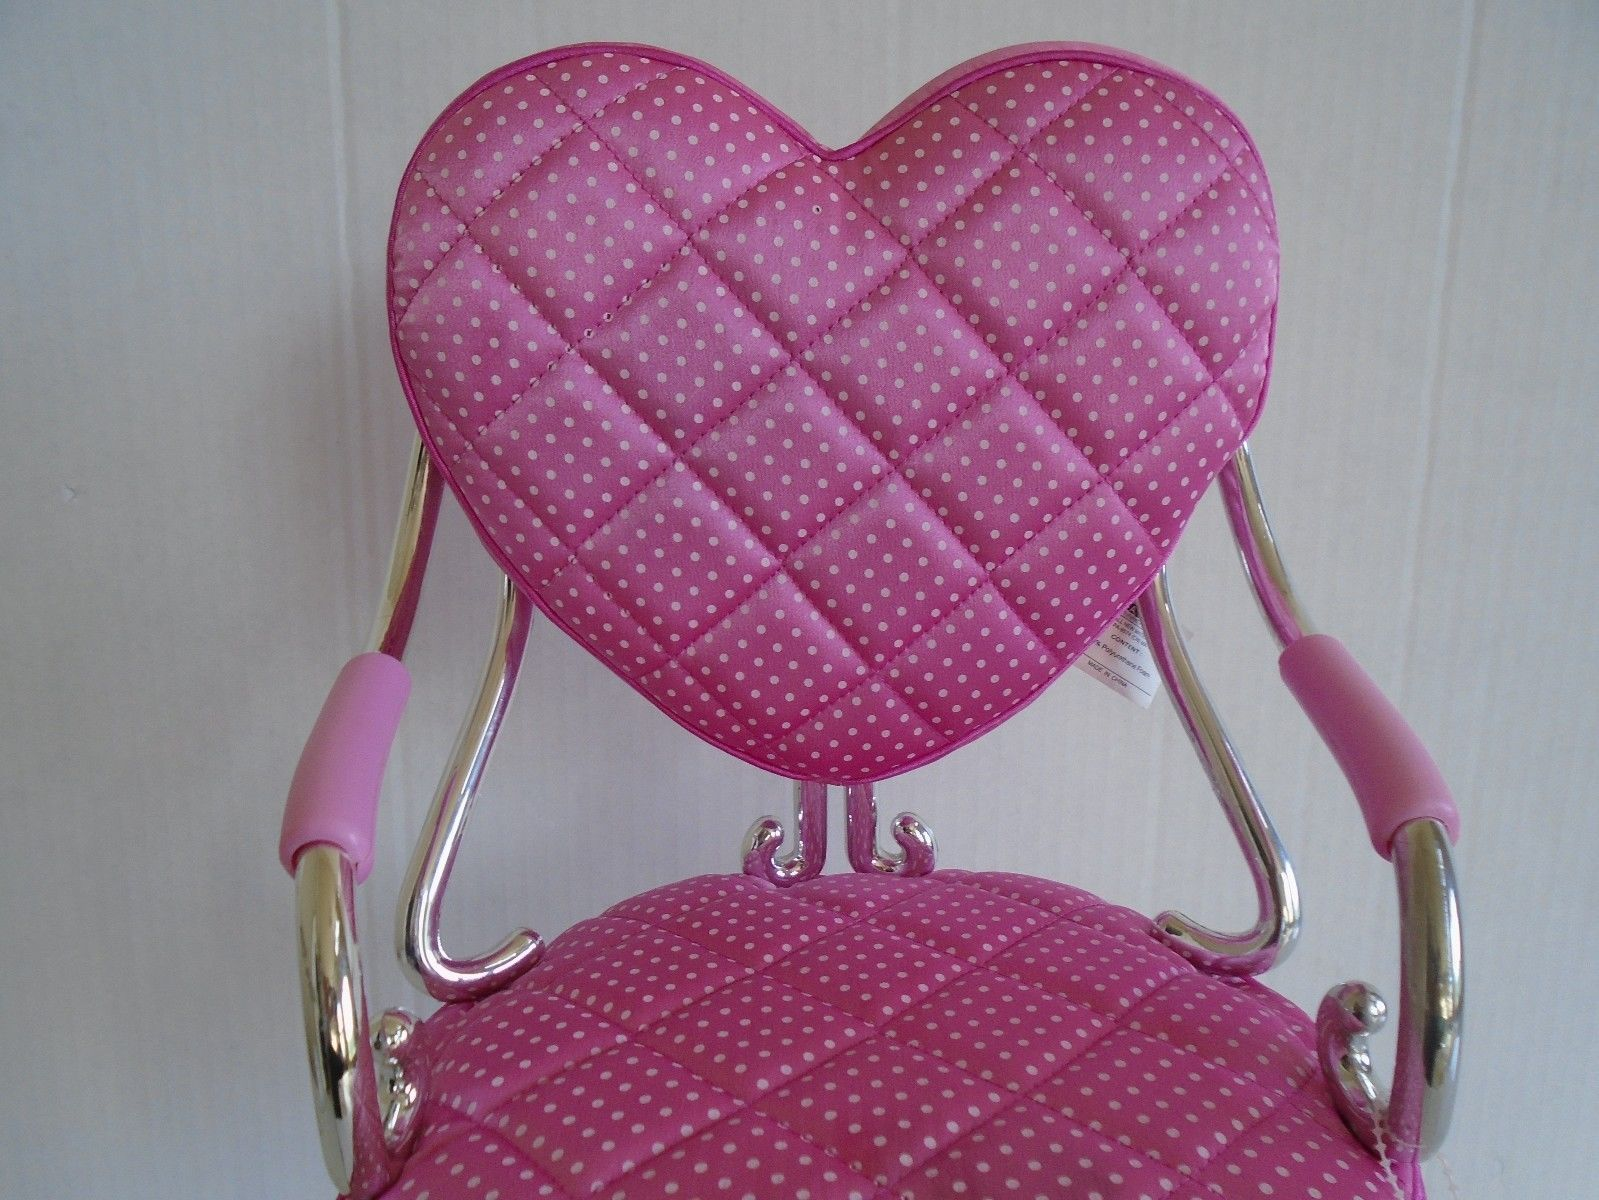 doll salon chair used computer chairs pink battat adjustable 18 quot for american girl